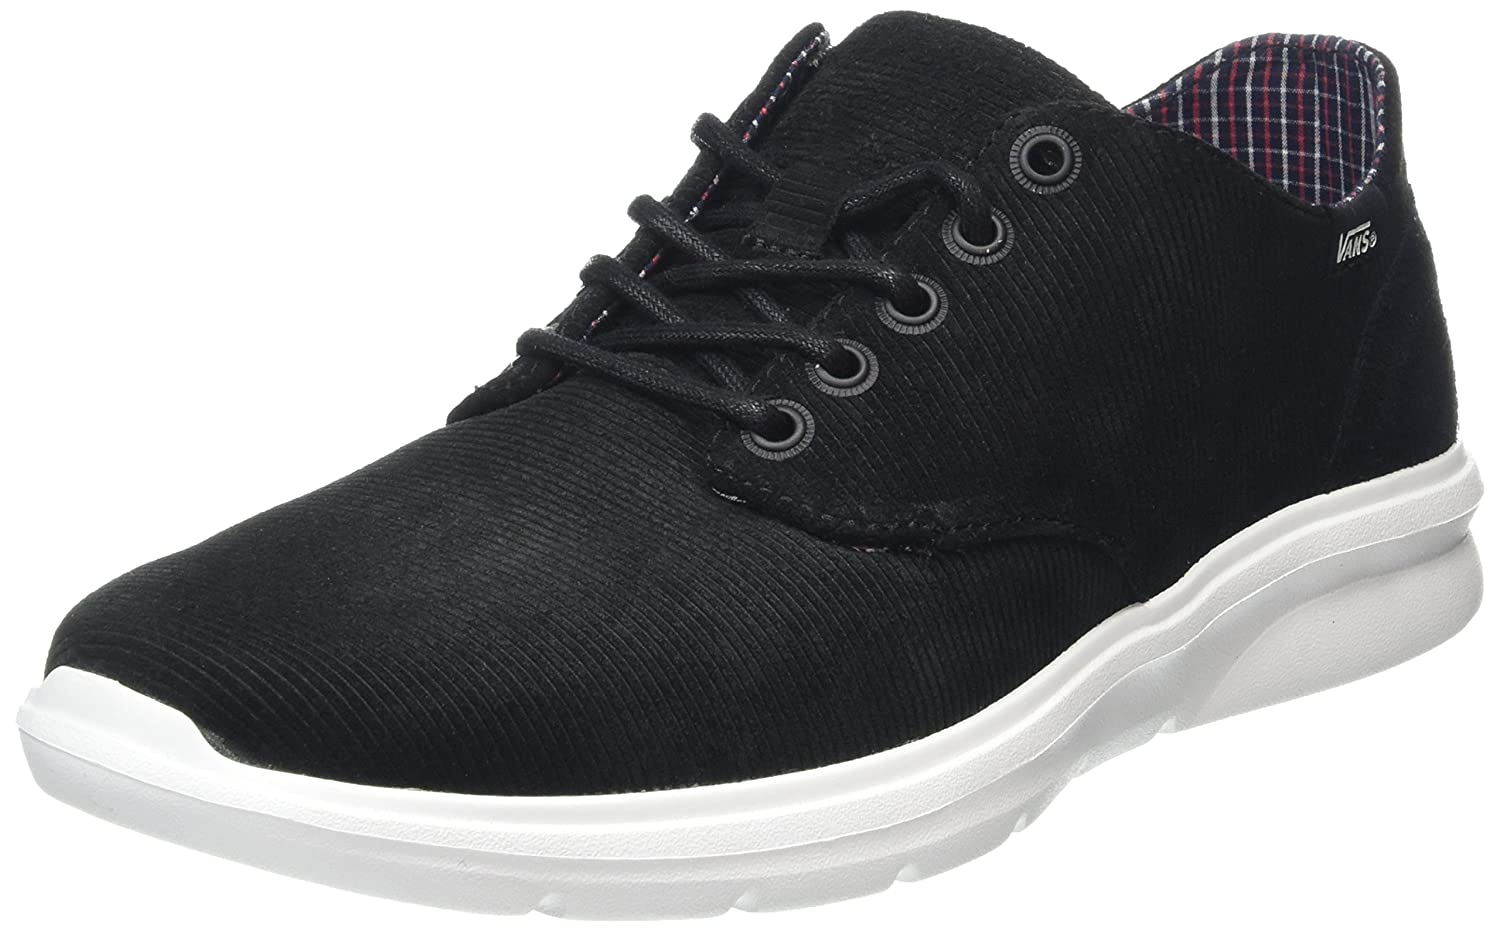 Vans ISO 2, Zapatillas Unisex Adulto 36.5 EU|Negro (Cord & Plaid Black)